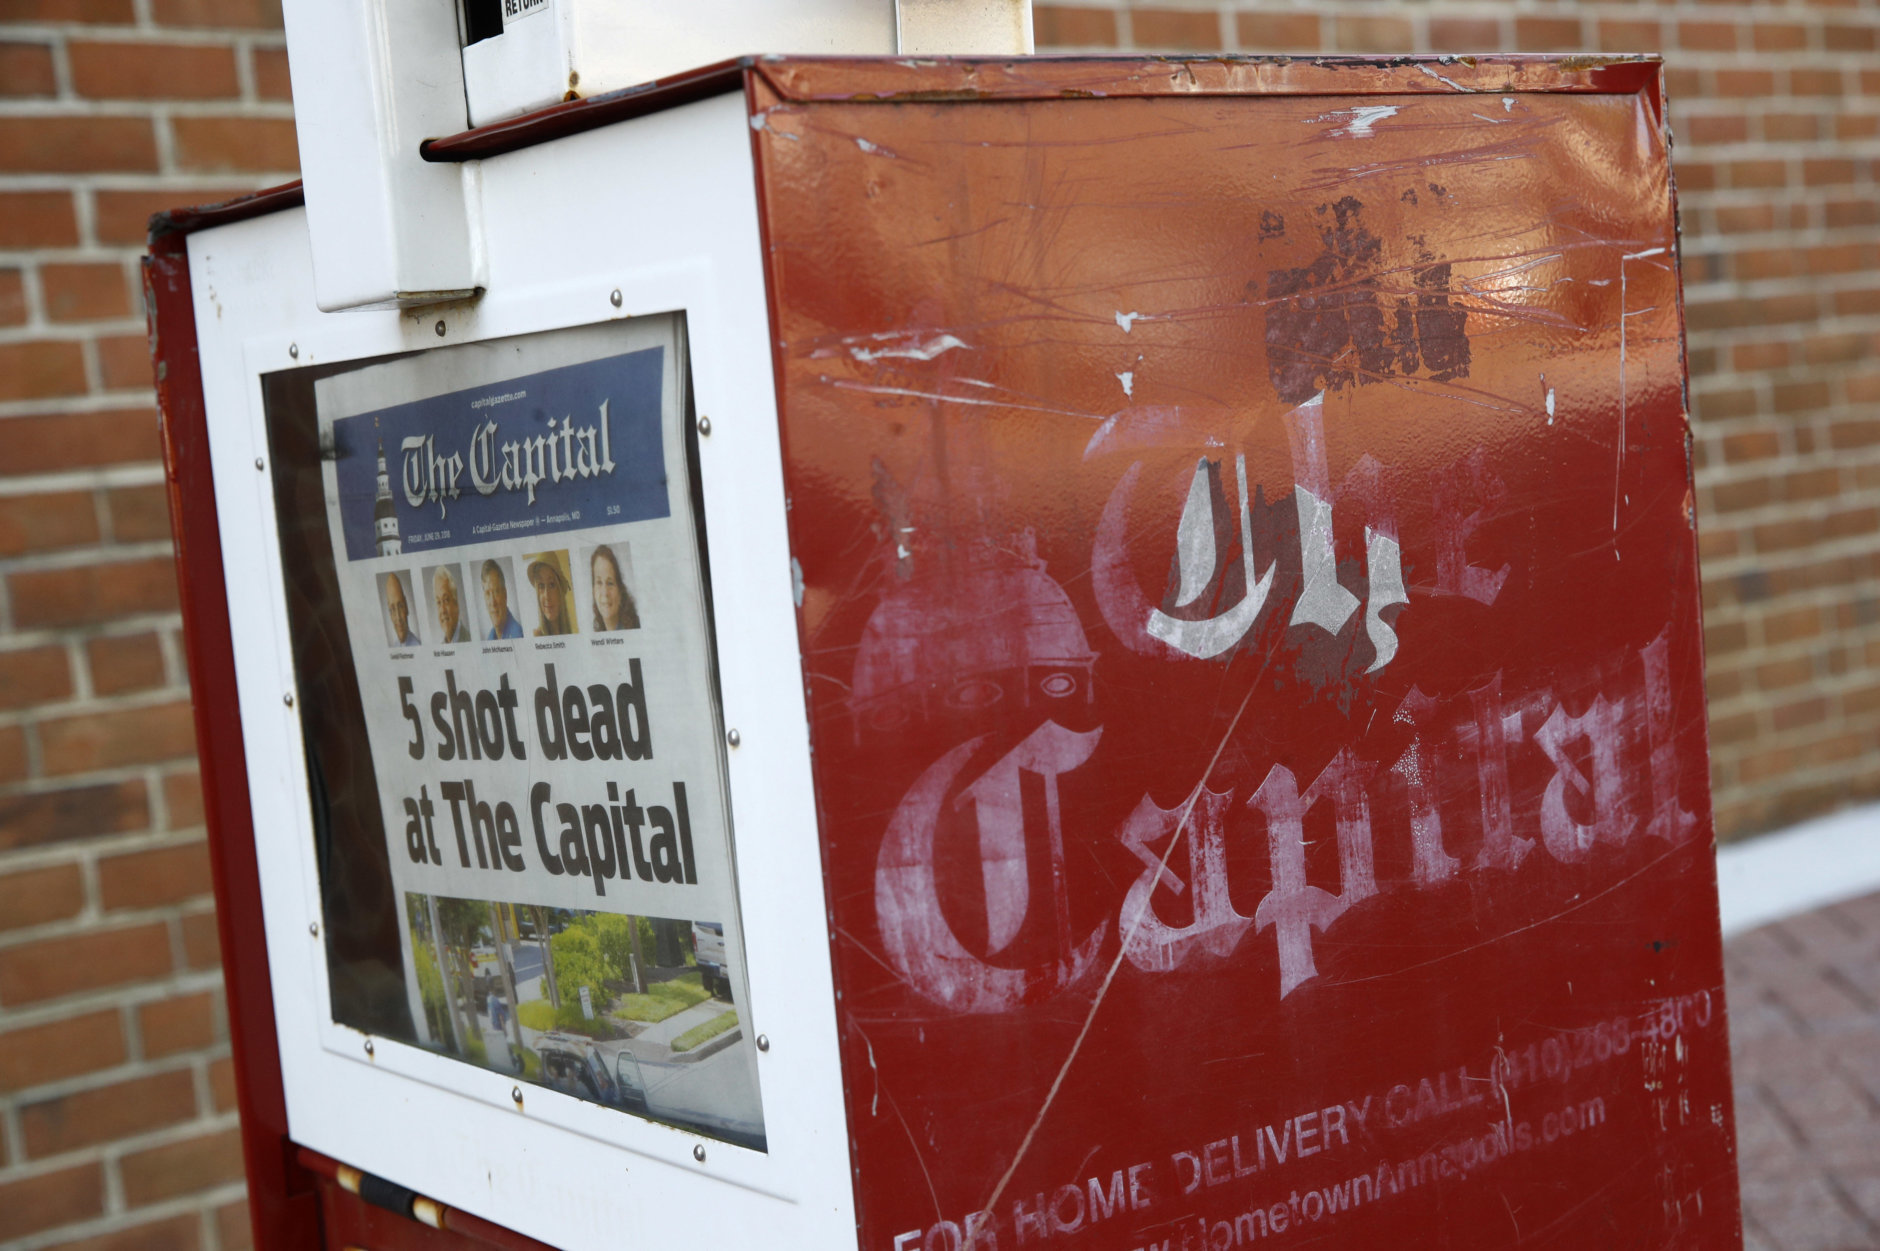 A Capital Gazette newspaper rack displays the day's front page, Friday, June 29, 2018, in Annapolis, Md. A man armed with smoke grenades and a shotgun attacked journalists in the newspaper's building Thursday, killing several people before police quickly stormed the building and arrested him, police and witnesses said. (AP Photo/Patrick Semansky)